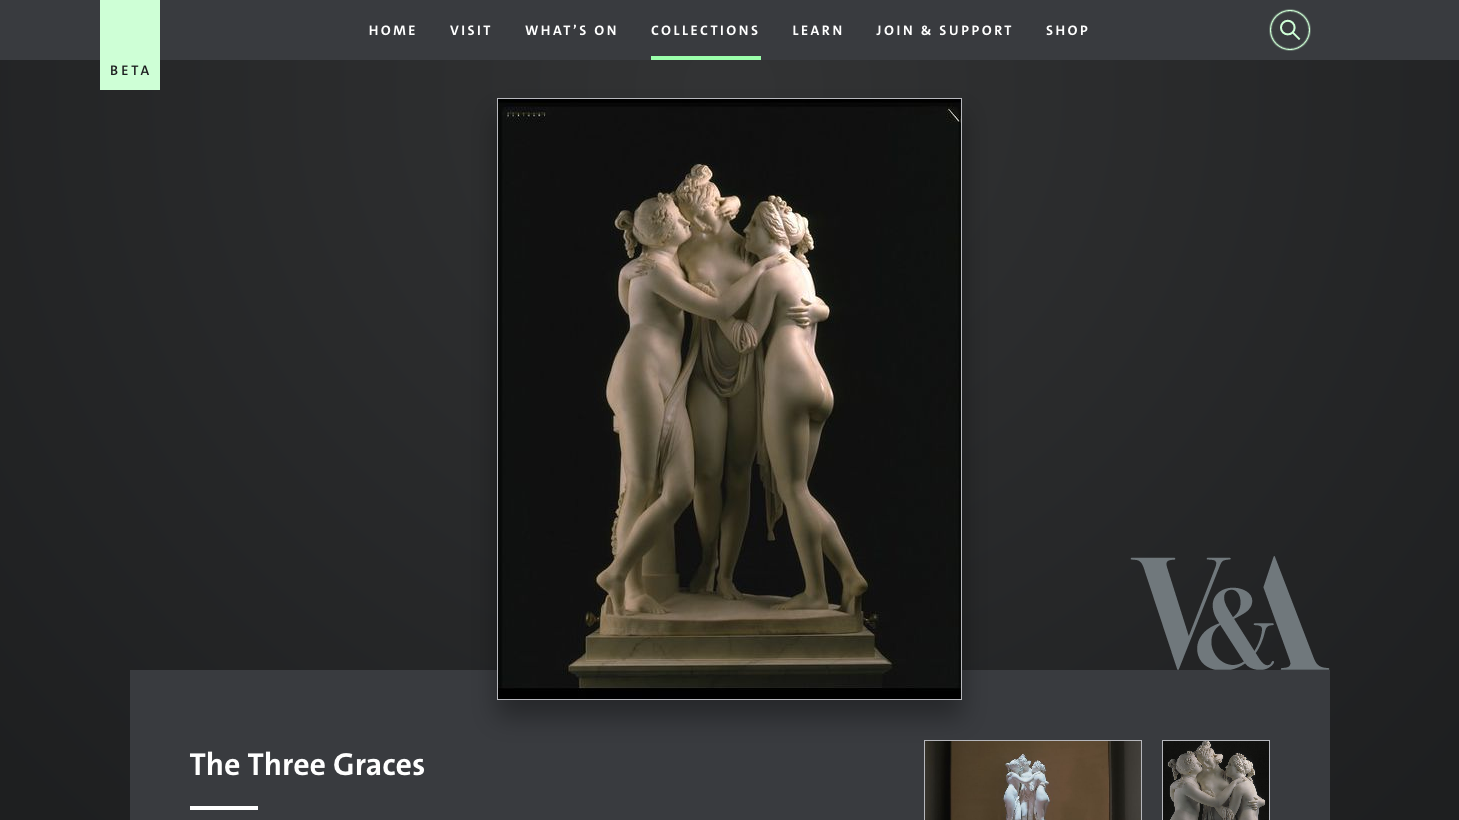 V&A Explore the Collections showing Antonio Canova, The Three Graces